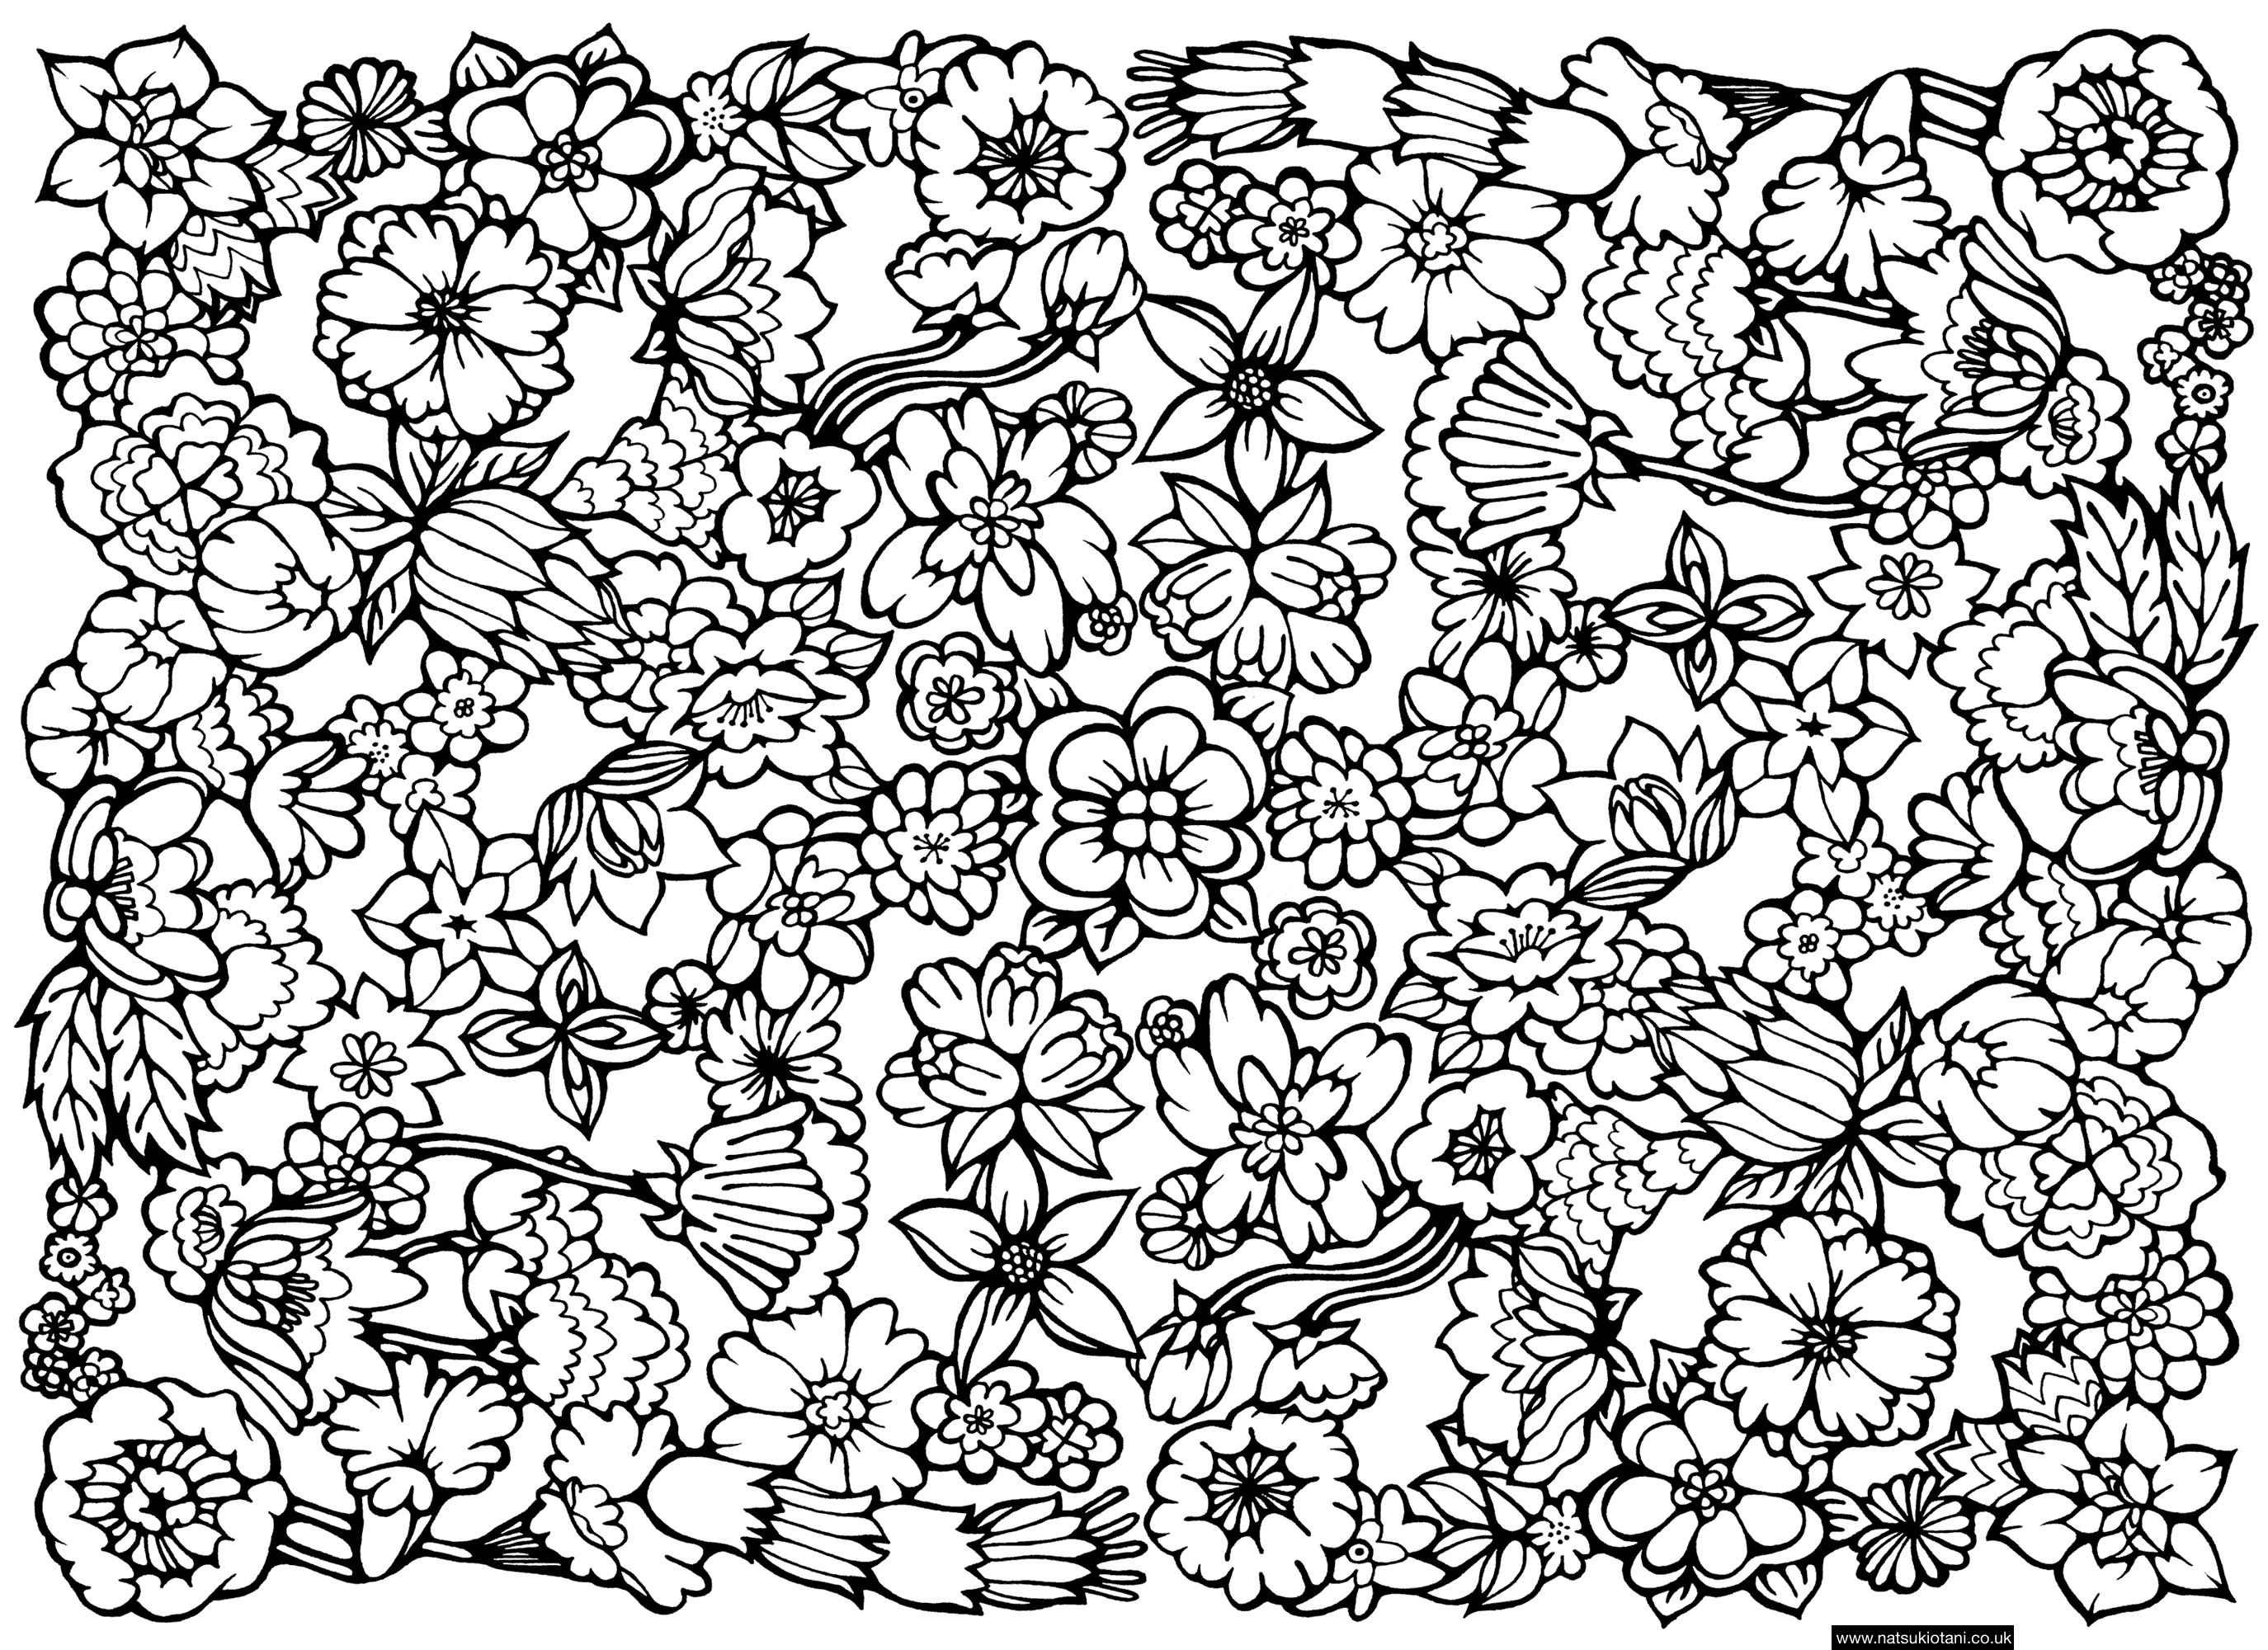 hard design coloring pages design patterns hard coloring pages coloring pages for kids coloring pages hard design